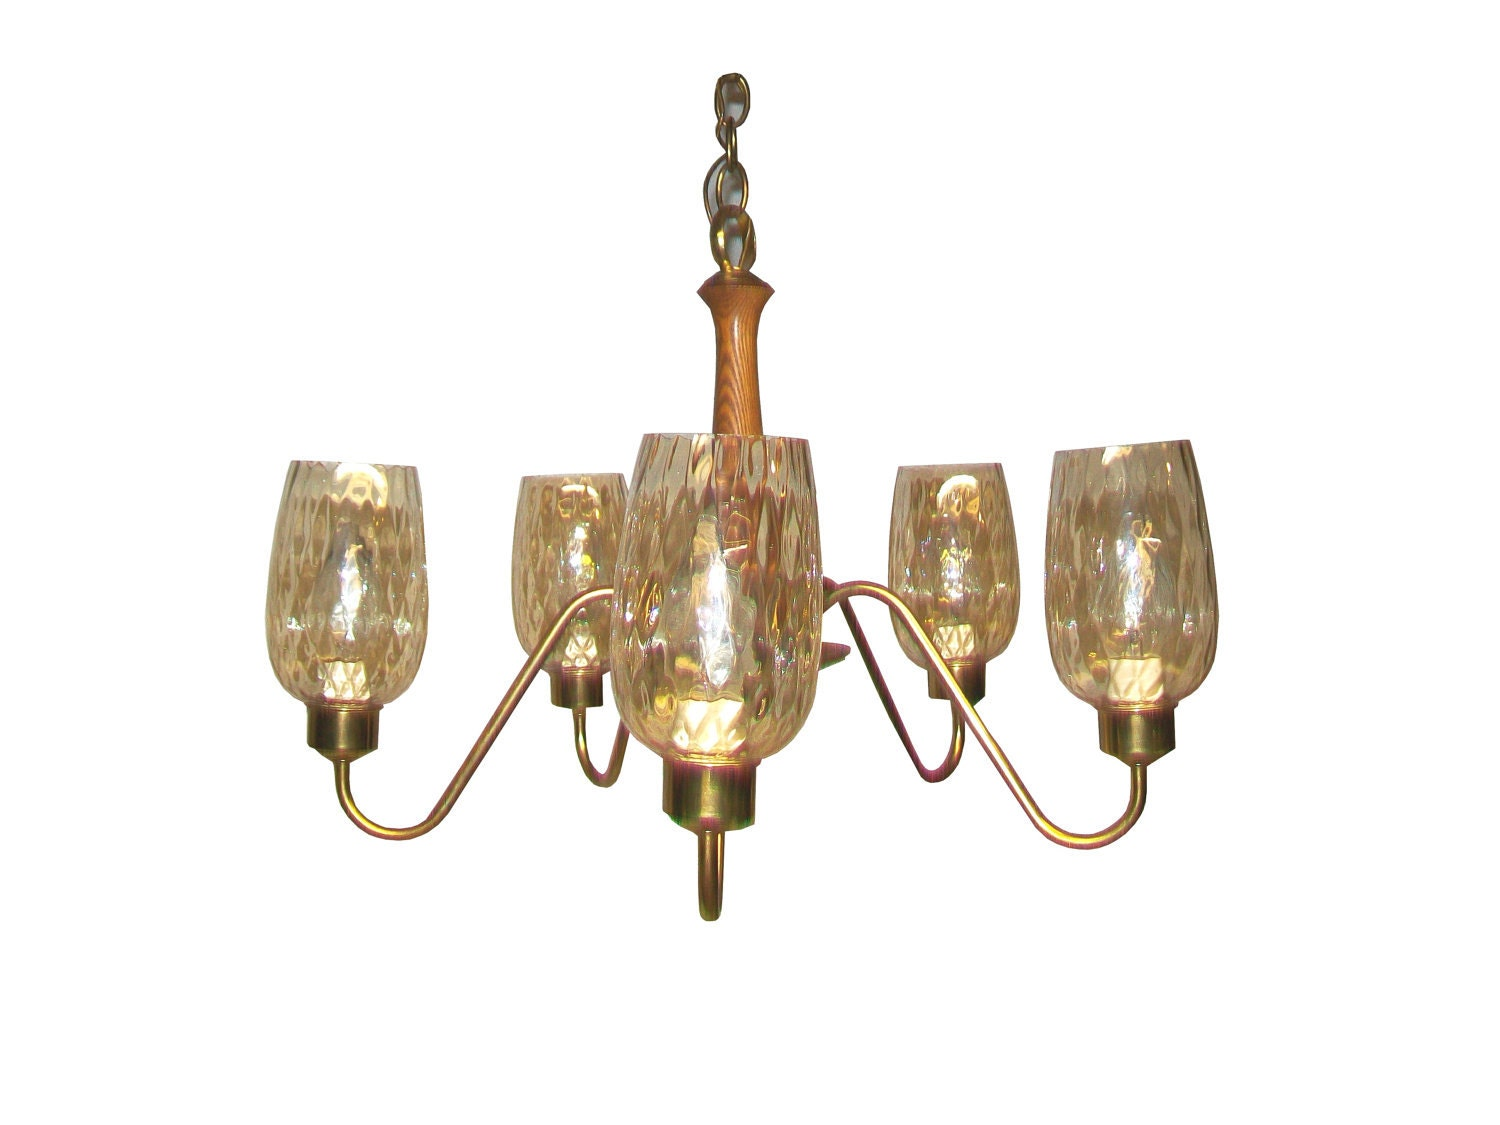 Distributor of Fine Prisms Chandeliers and Accessories